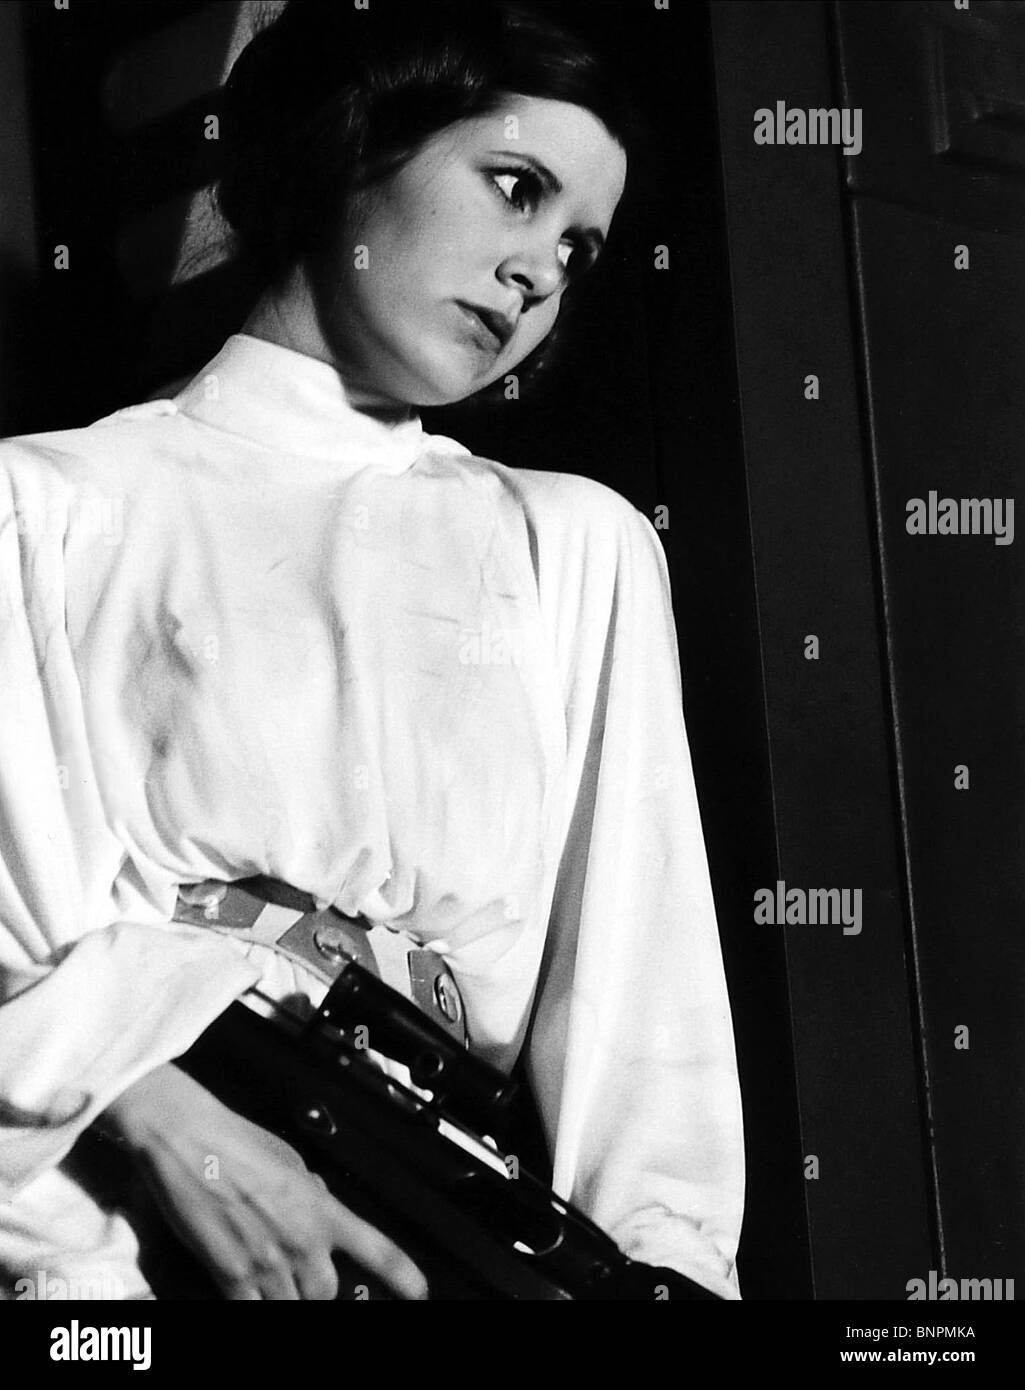 CARRIE FISHER STAR WARS: EPISODE IV - A NEW HOPE (1977) - Stock Image